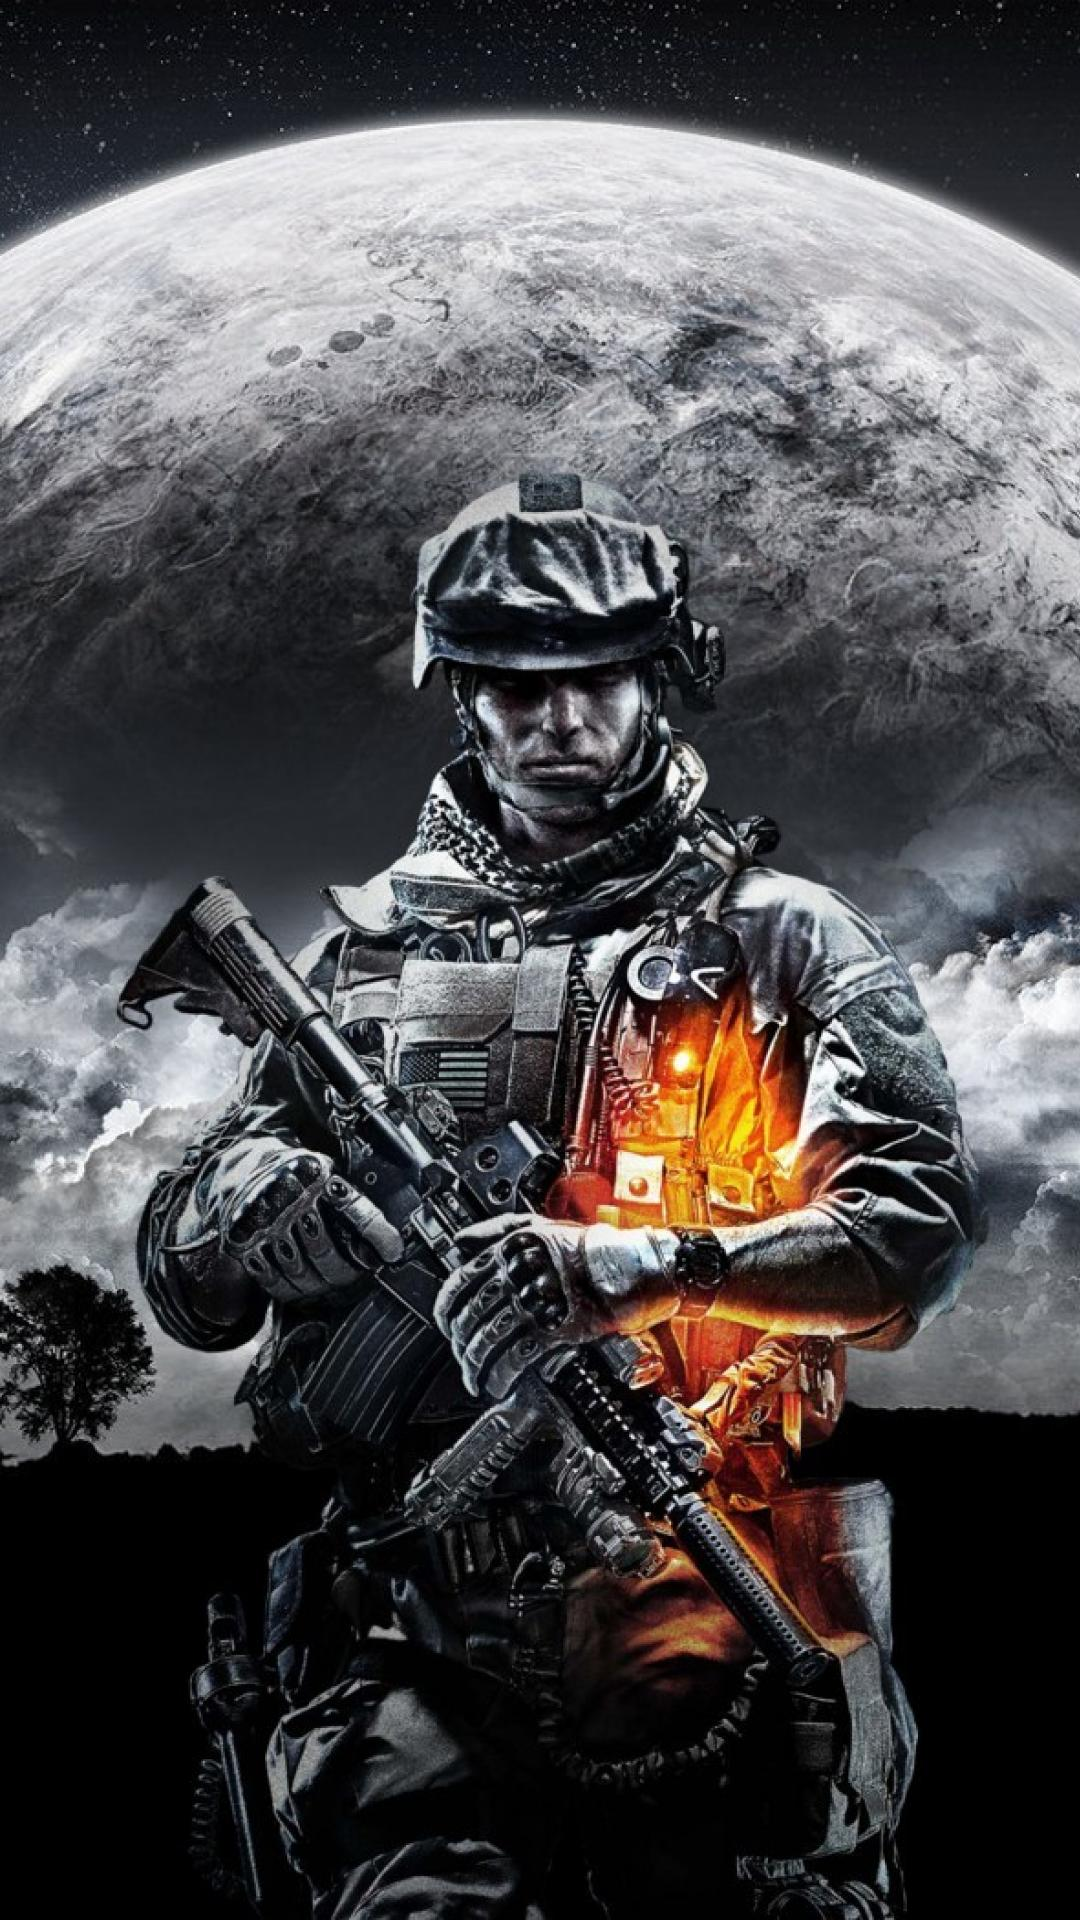 Moon us army battlefield 3 pc games wallpapers